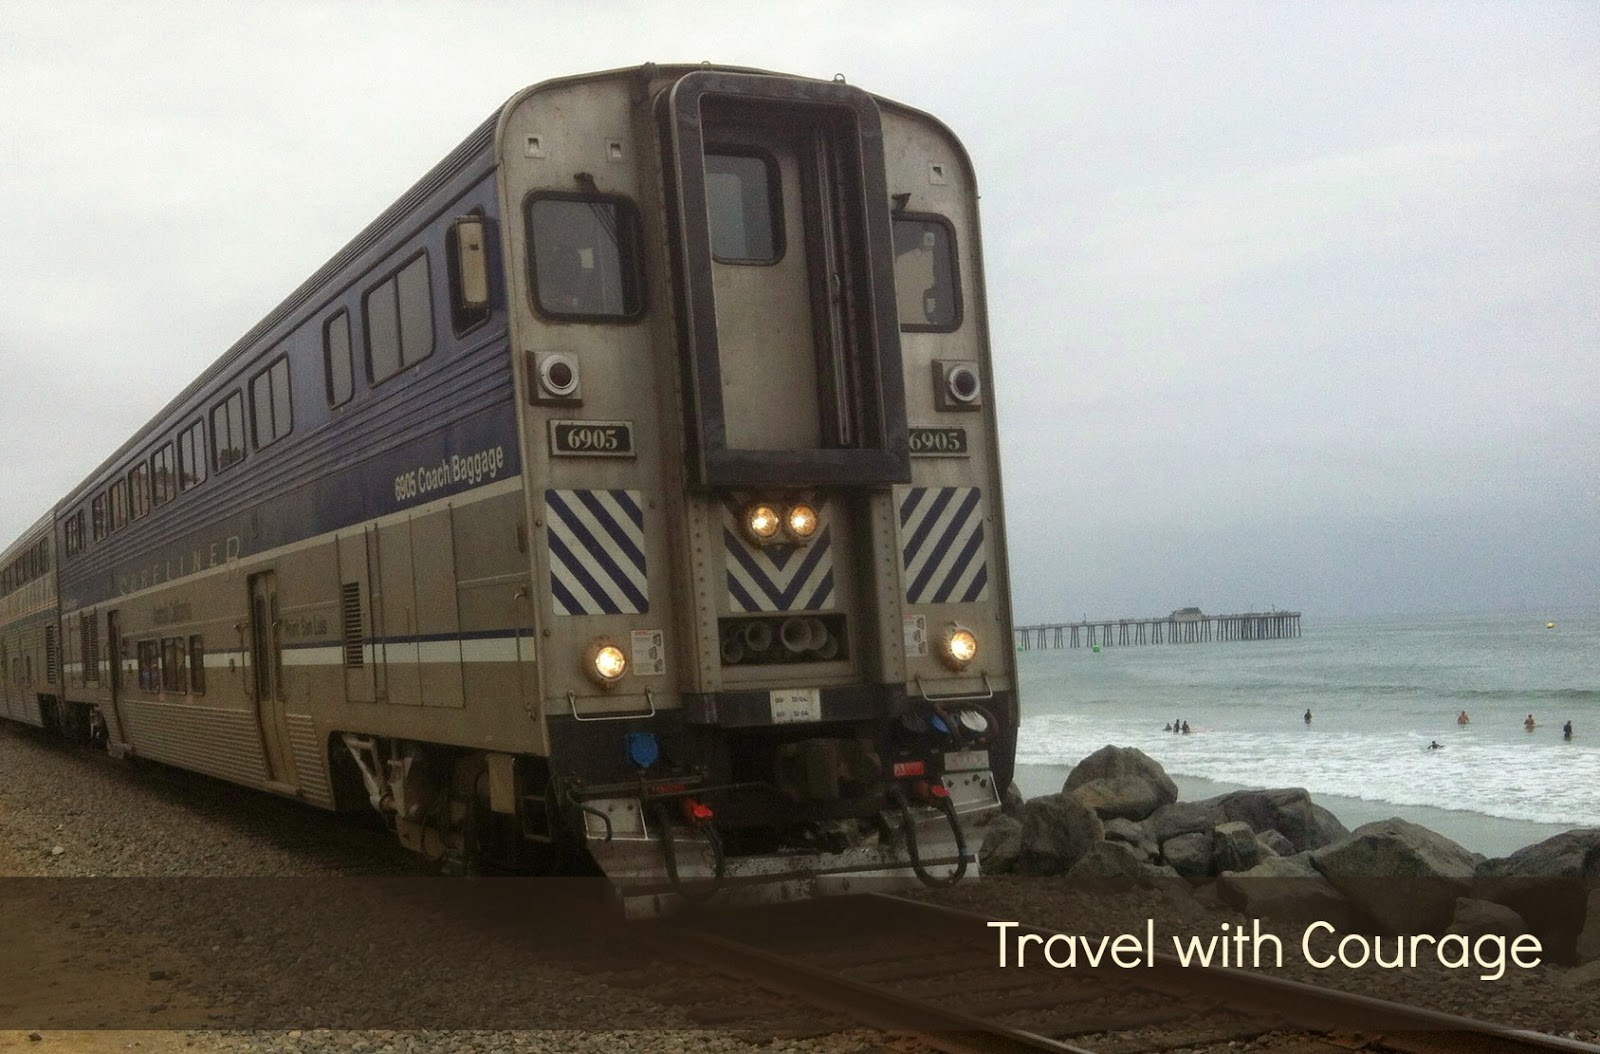 traveling with courage in San Clemente